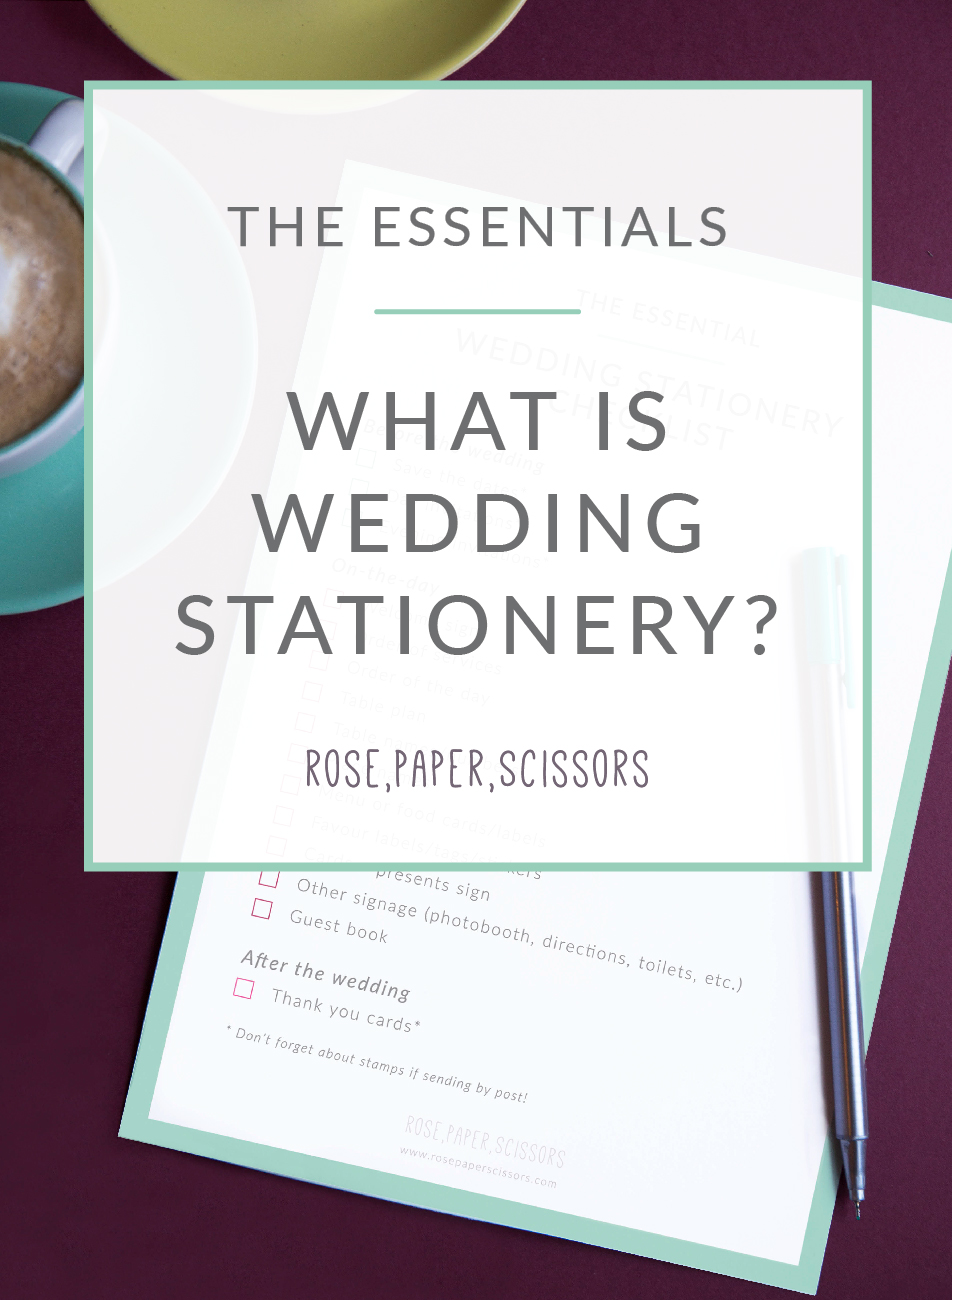 The Essentials- What is Wedding Stationery?